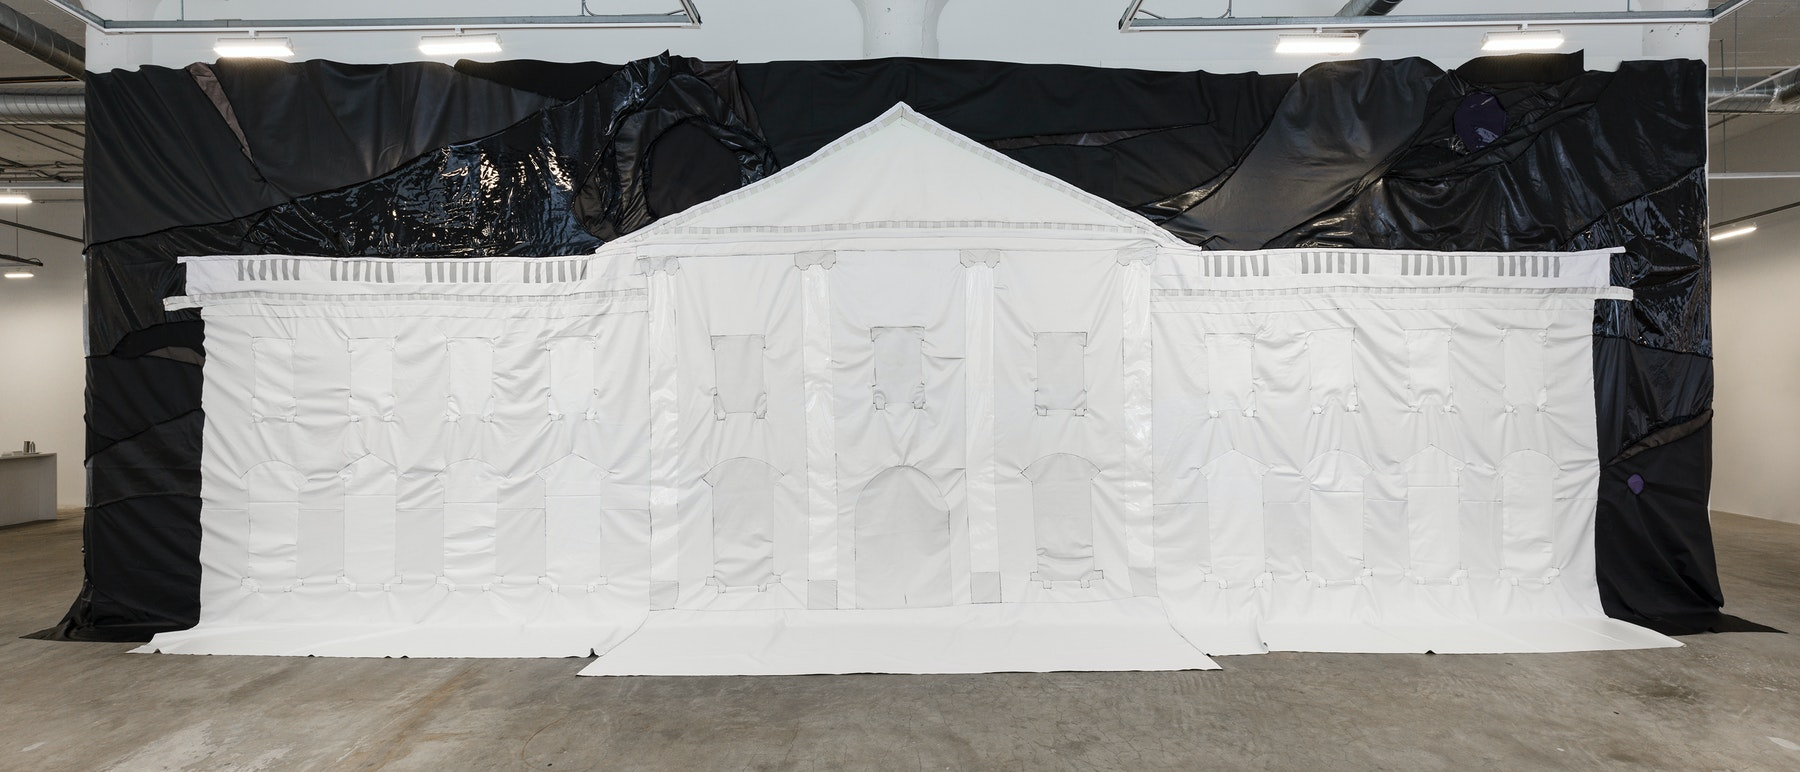 "Rodney McMillian ""White House II,"" 2018-2020 Vinyl and thread 156 x 528 x 36"" [HxWxD] (396.24 x 1,341.12 x 91.44 cm) Inventory #MCR407 Courtesy of the artist and Vielmetter Los Angeles Photo credit: Jeff Mclane"